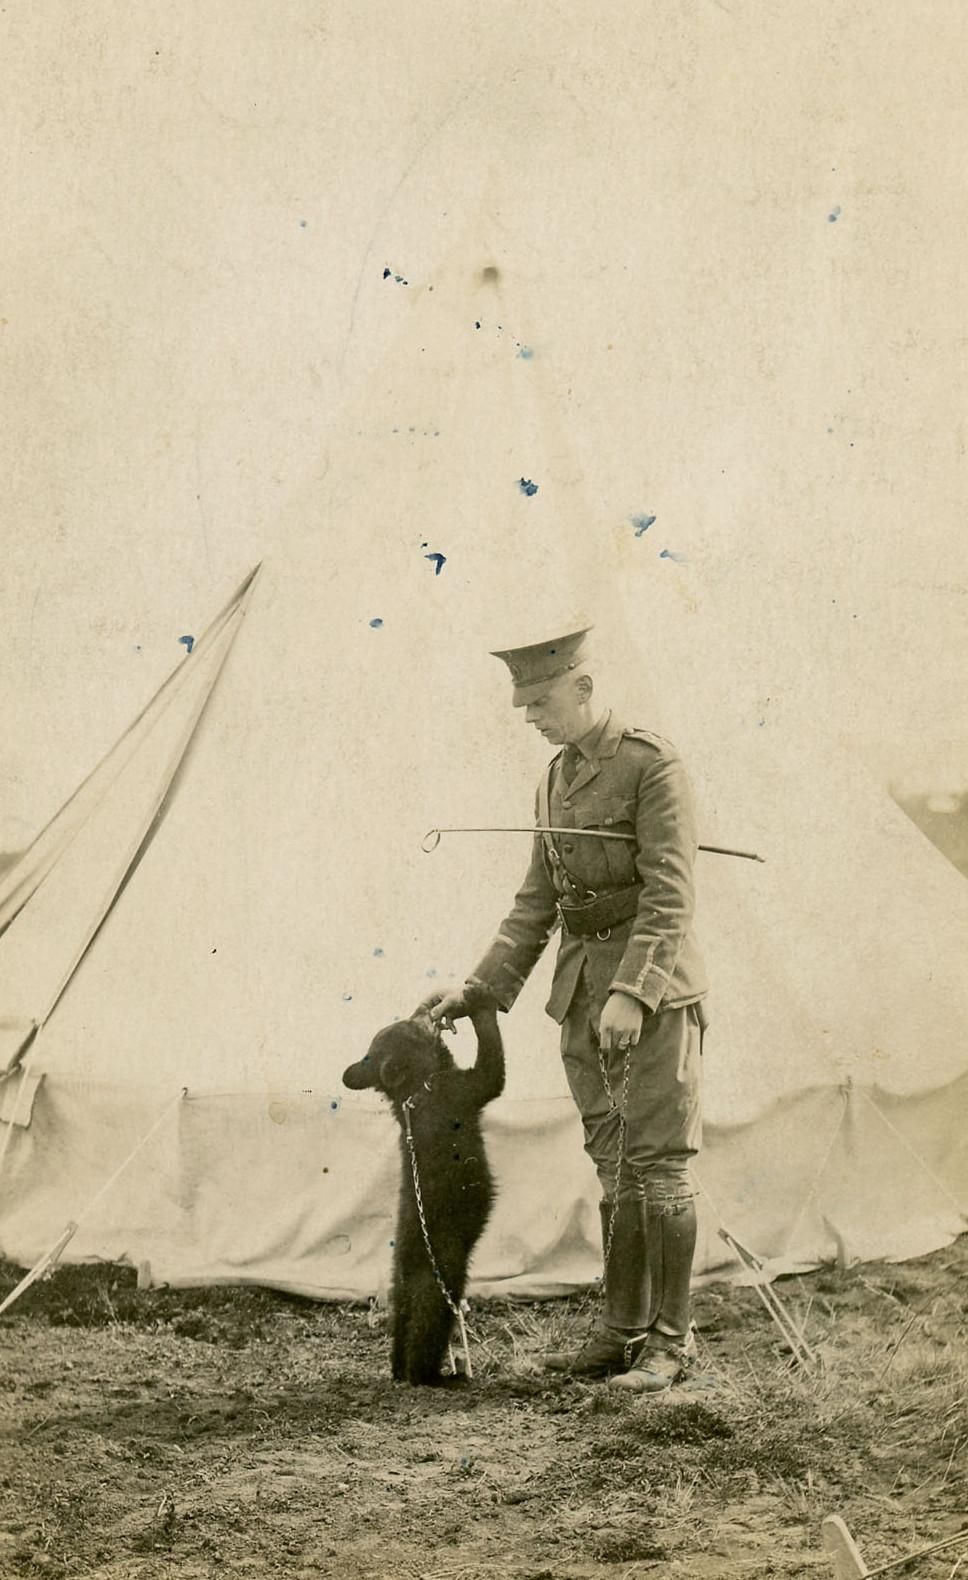 Winnipeg the Bear, the inspiration for 'Winnie the Pooh', is seen here with Lt. Harry Colebourn, 1914